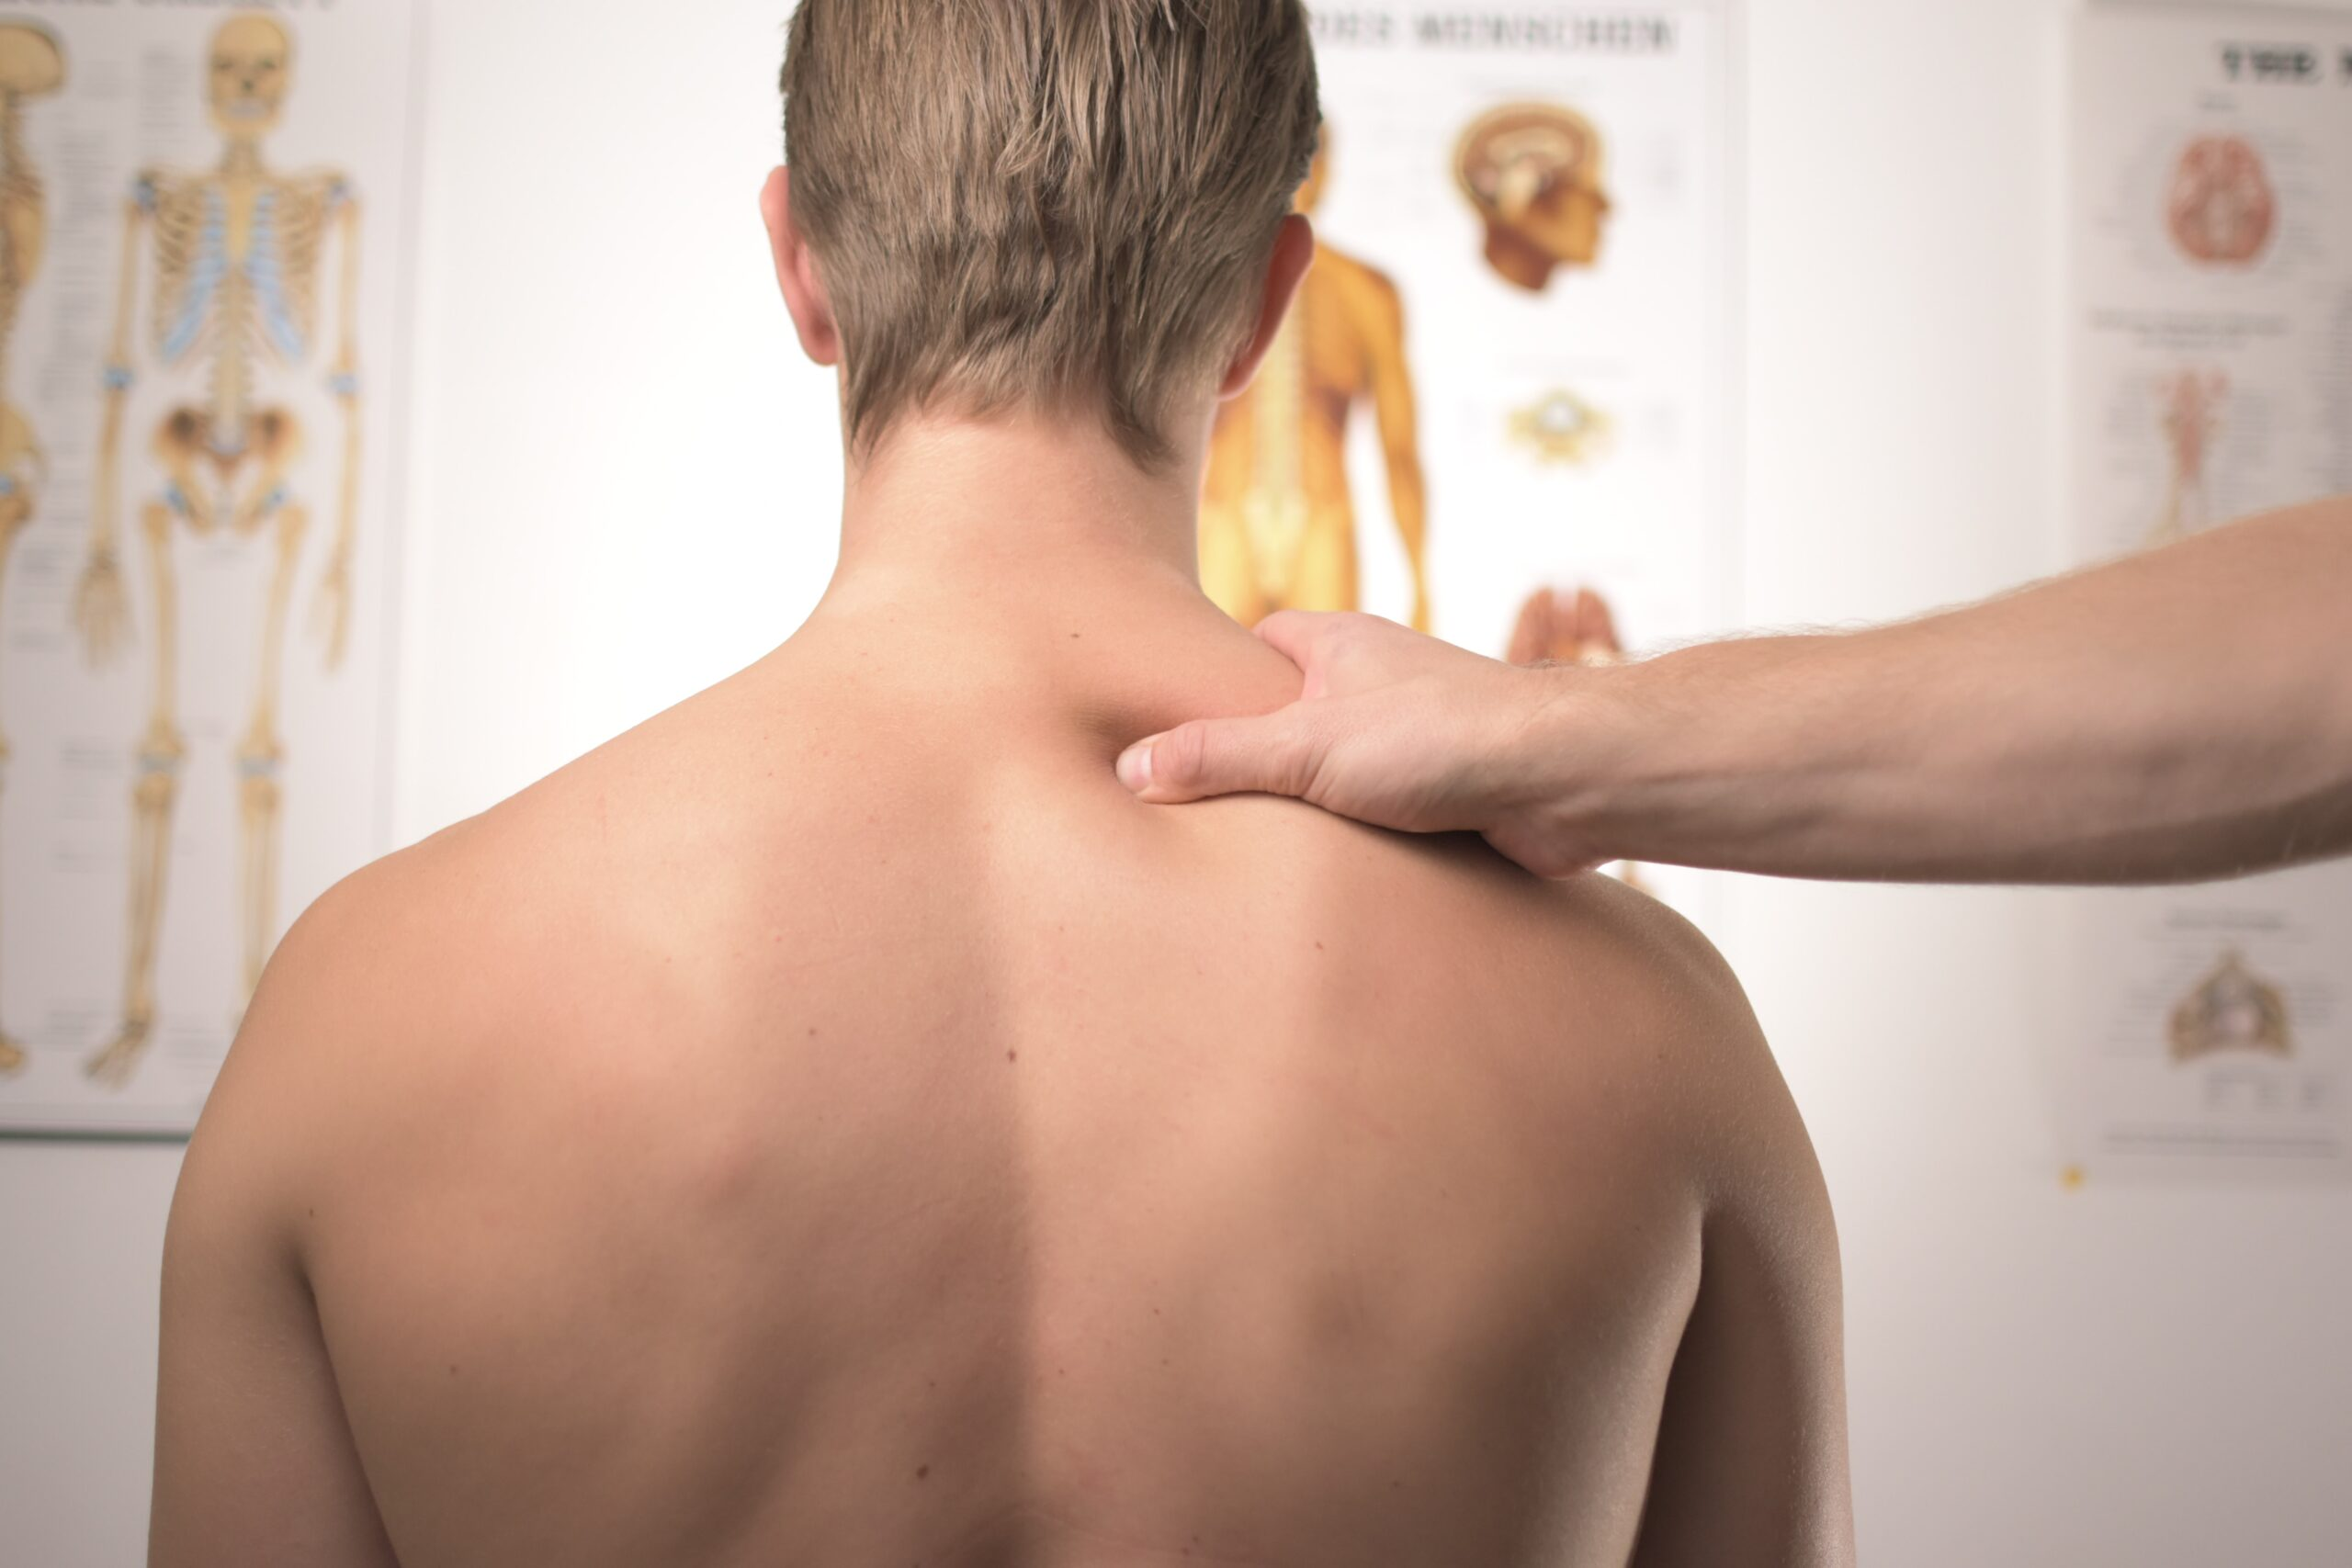 Man receives shoulder massage in a physician's clinic